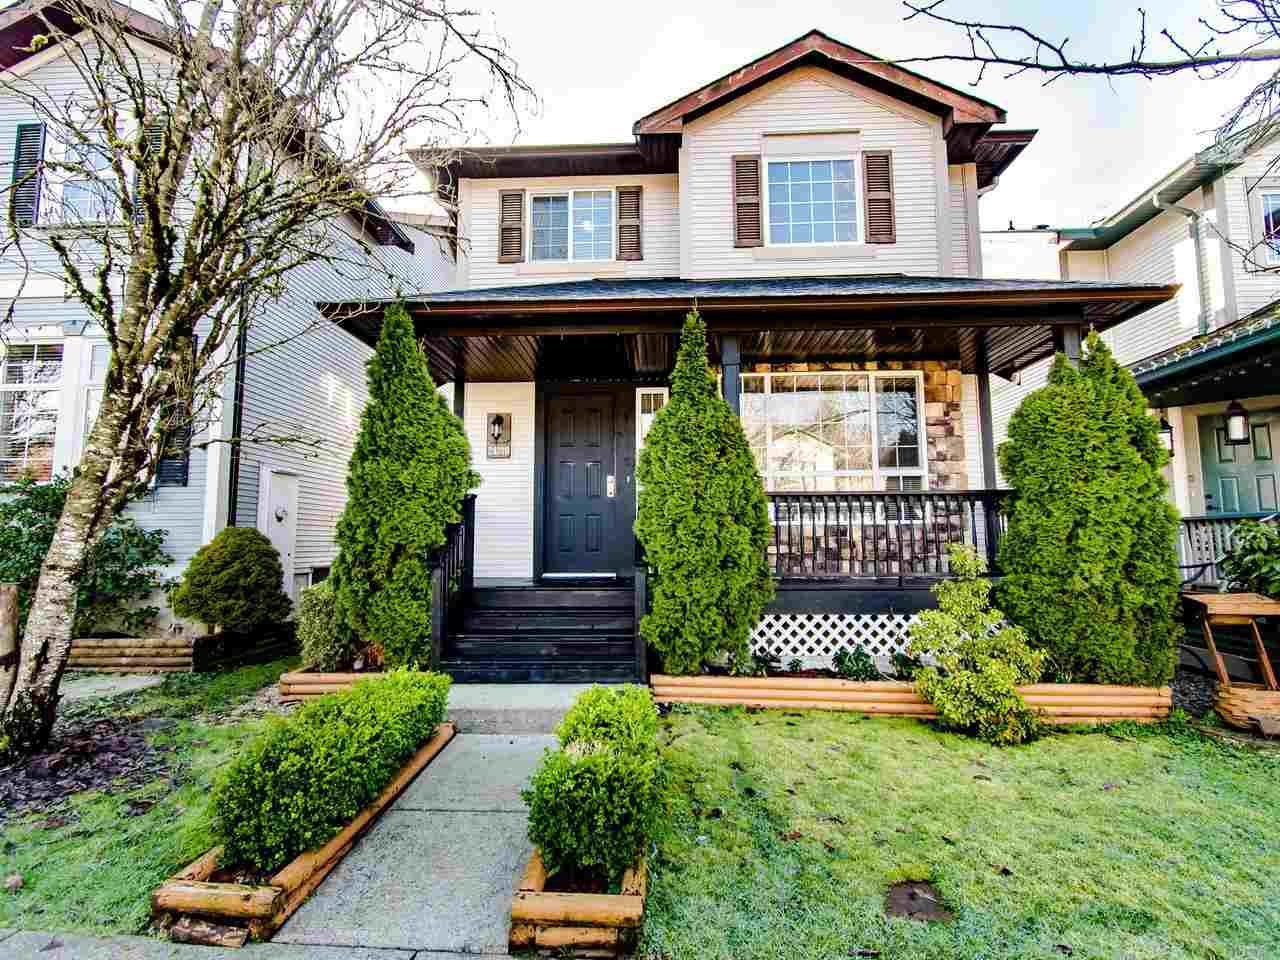 """Main Photo: 24370 101 Avenue in Maple Ridge: Albion House for sale in """"COUNTRY LANE"""" : MLS®# R2435644"""